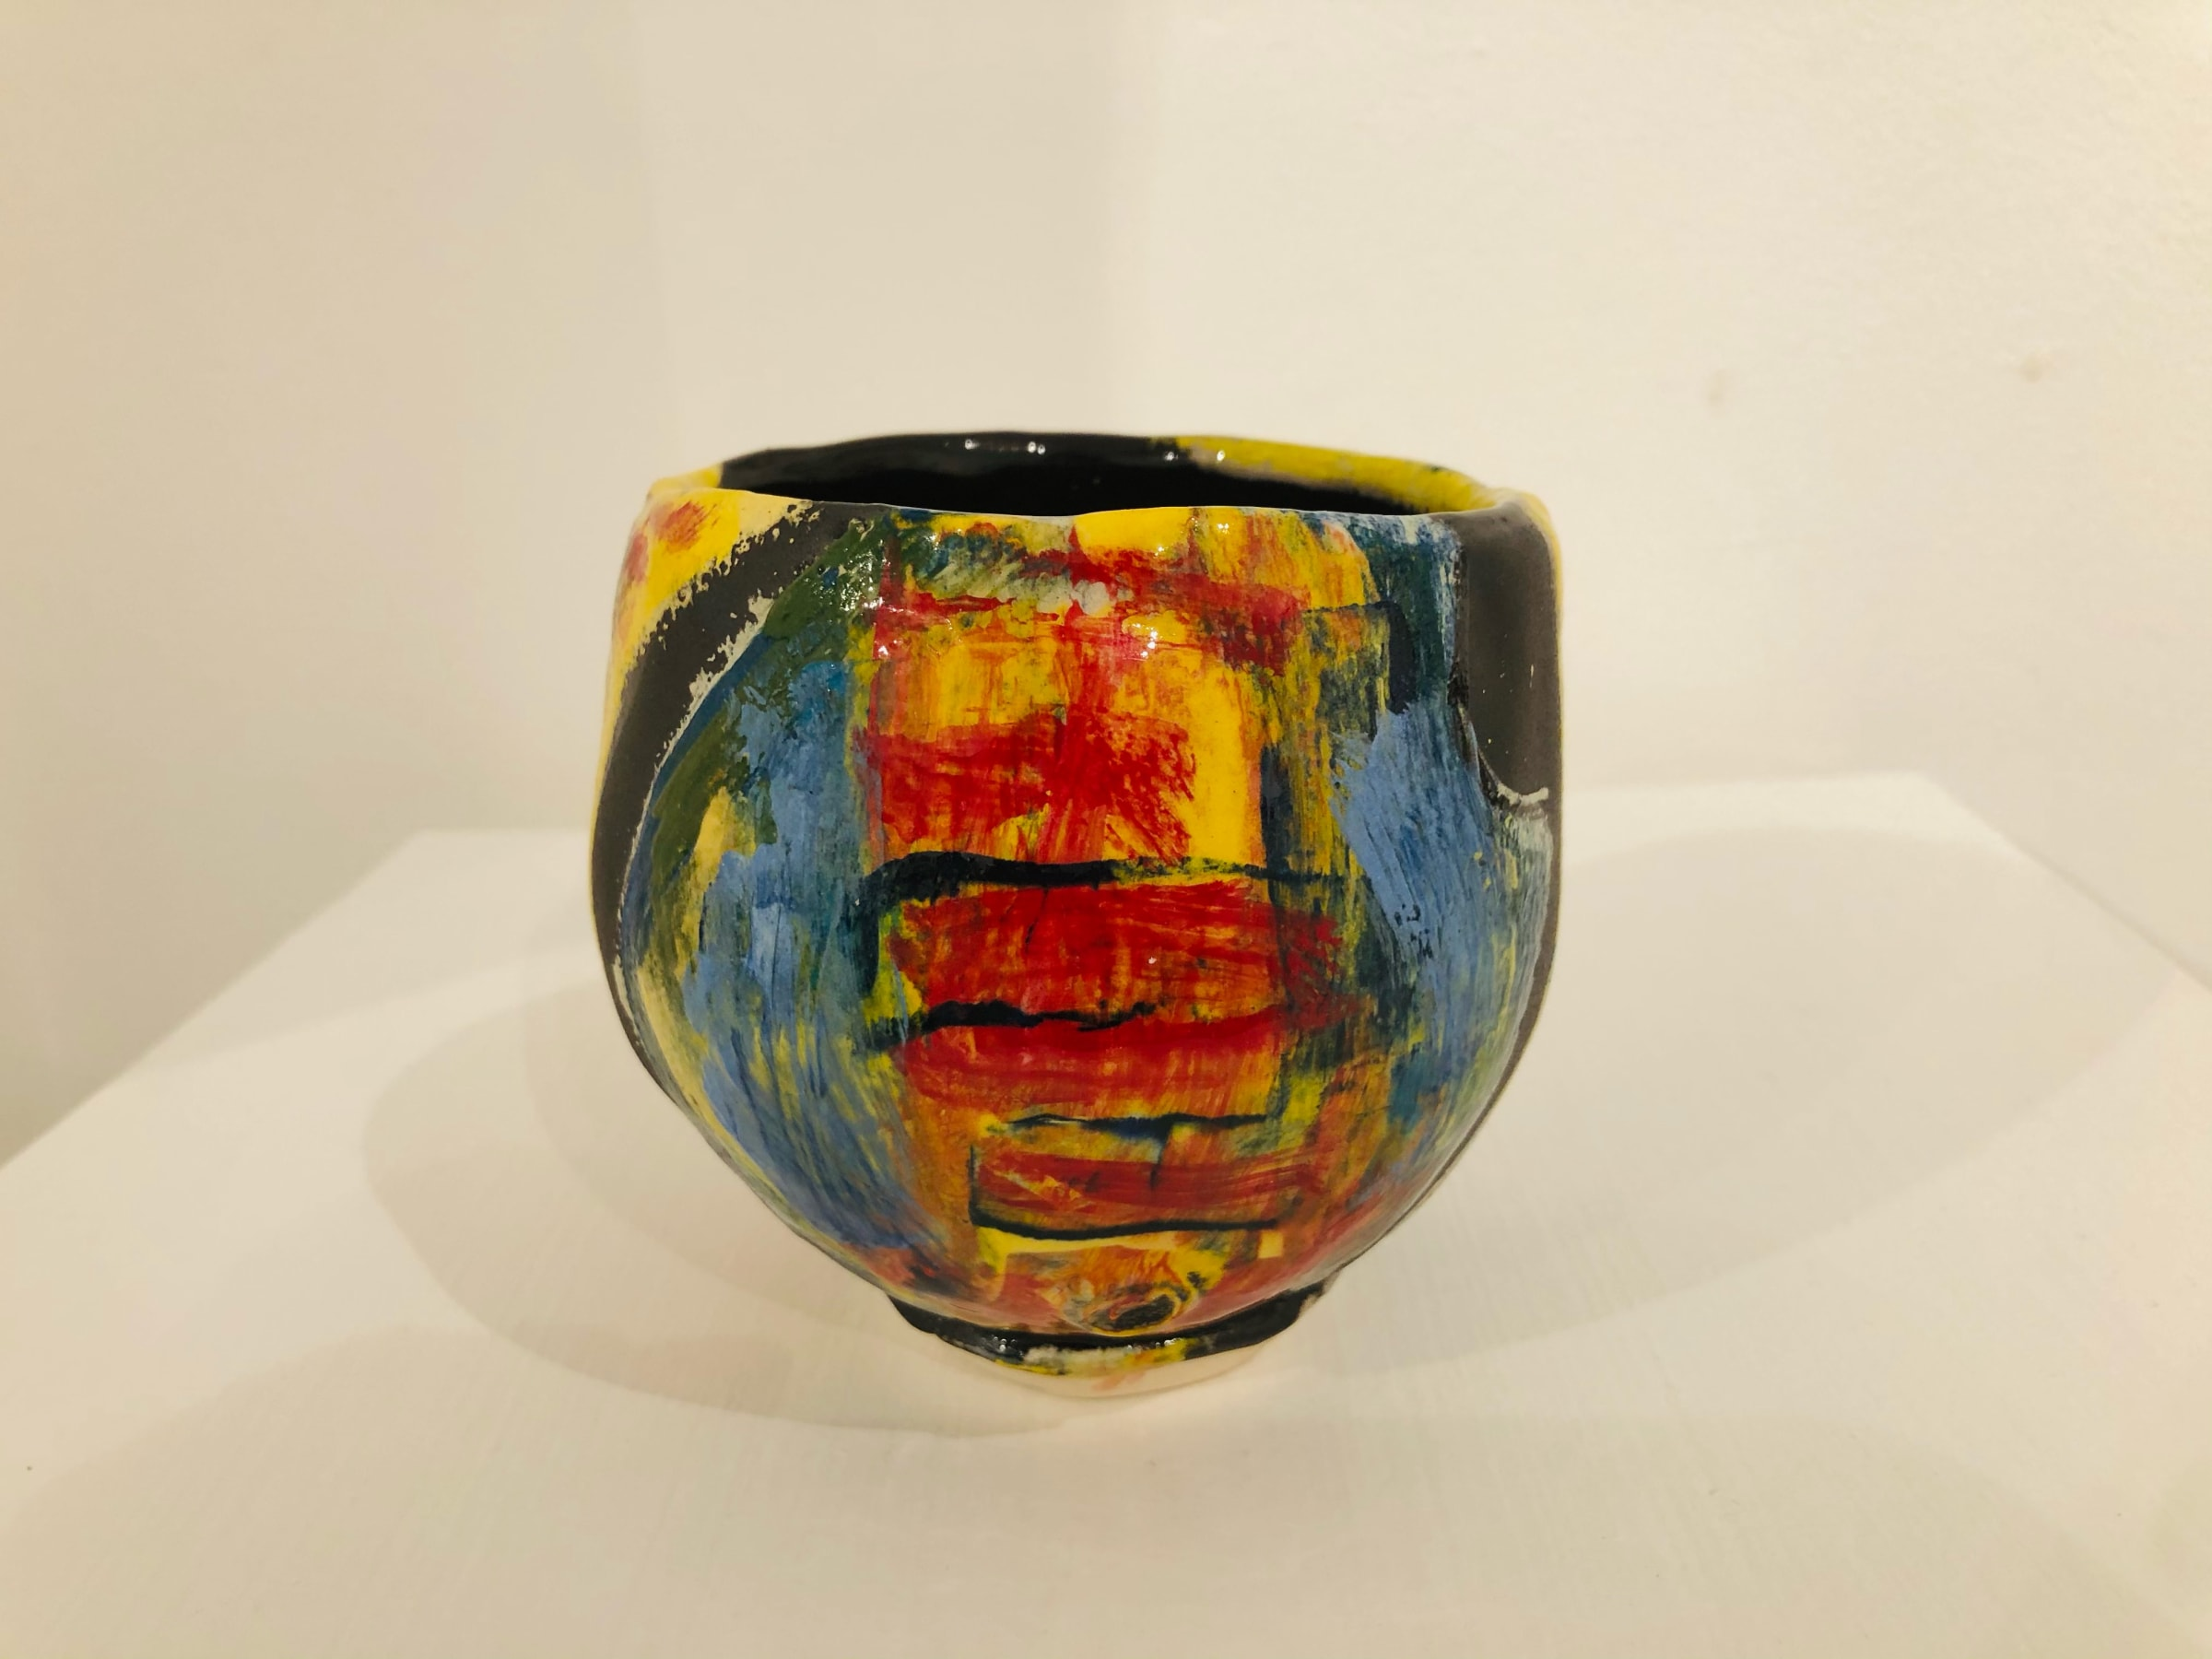 """<span class=""""link fancybox-details-link""""><a href=""""/artists/100-john-pollex/works/7420-john-pollex-tea-bowl-hand-built-2020/"""">View Detail Page</a></span><div class=""""artist""""><strong>John Pollex</strong></div> <div class=""""title""""><em>Tea bowl (hand built)</em>, 2020</div> <div class=""""signed_and_dated"""">impressed with the artist's seal mark 'JP'</div> <div class=""""medium"""">white earthenware decorated with coloured slips</div> <div class=""""dimensions"""">height. 9 cm x diameter. 10 cm</div><div class=""""price"""">£88.00</div><div class=""""copyright_line"""">Copyright The Artist</div>"""